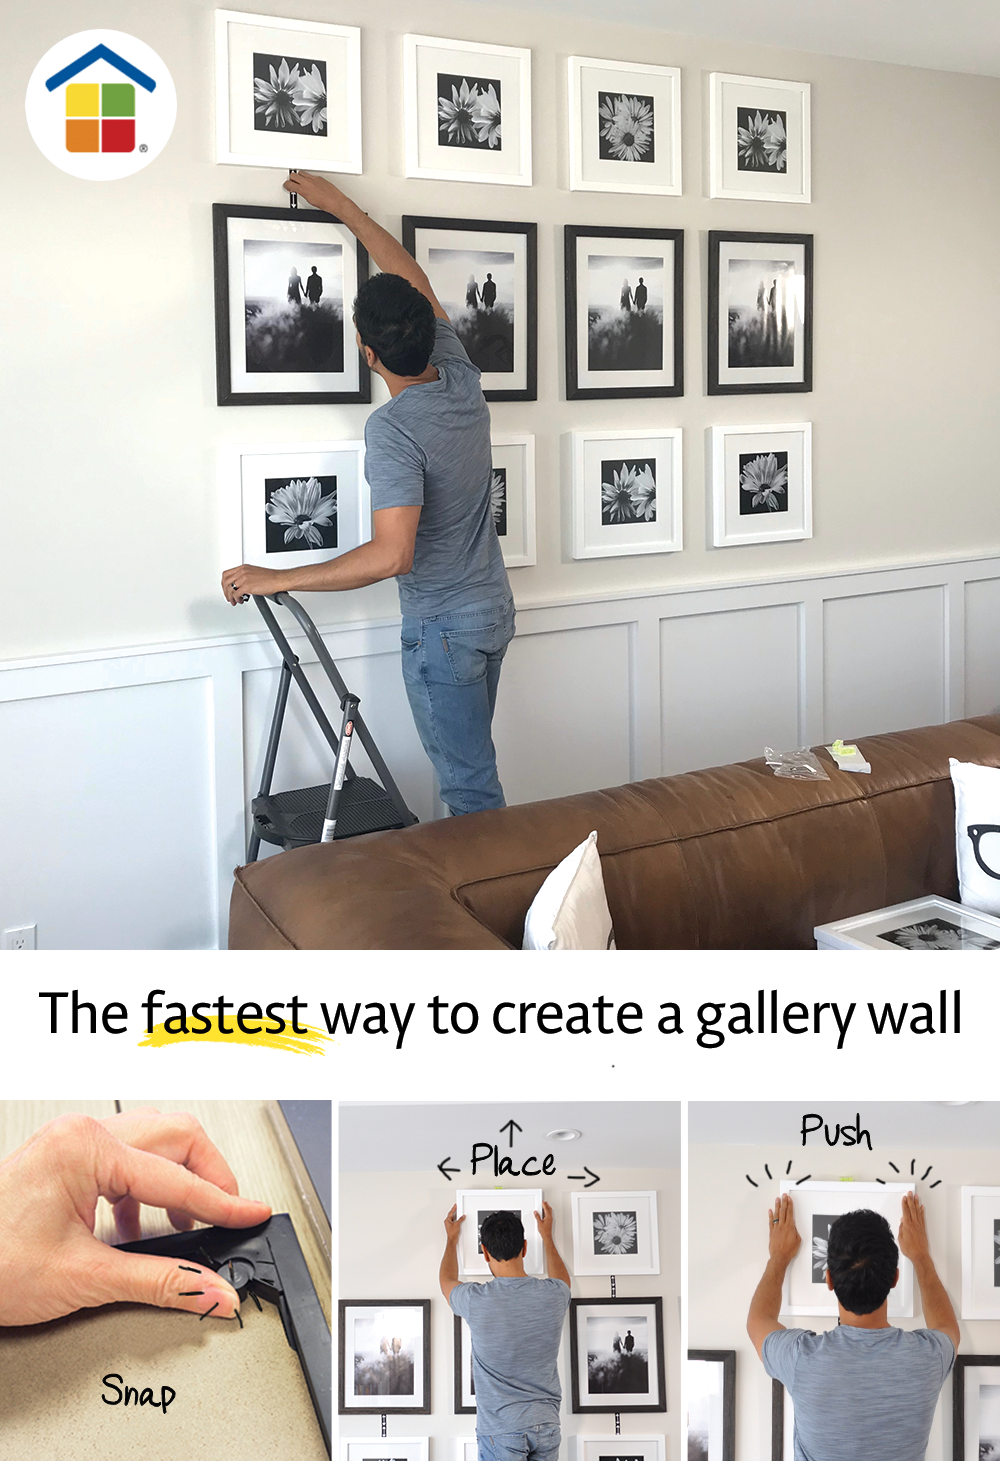 Place&Push® 3 Frame Set Frames on wall, Gallery wall